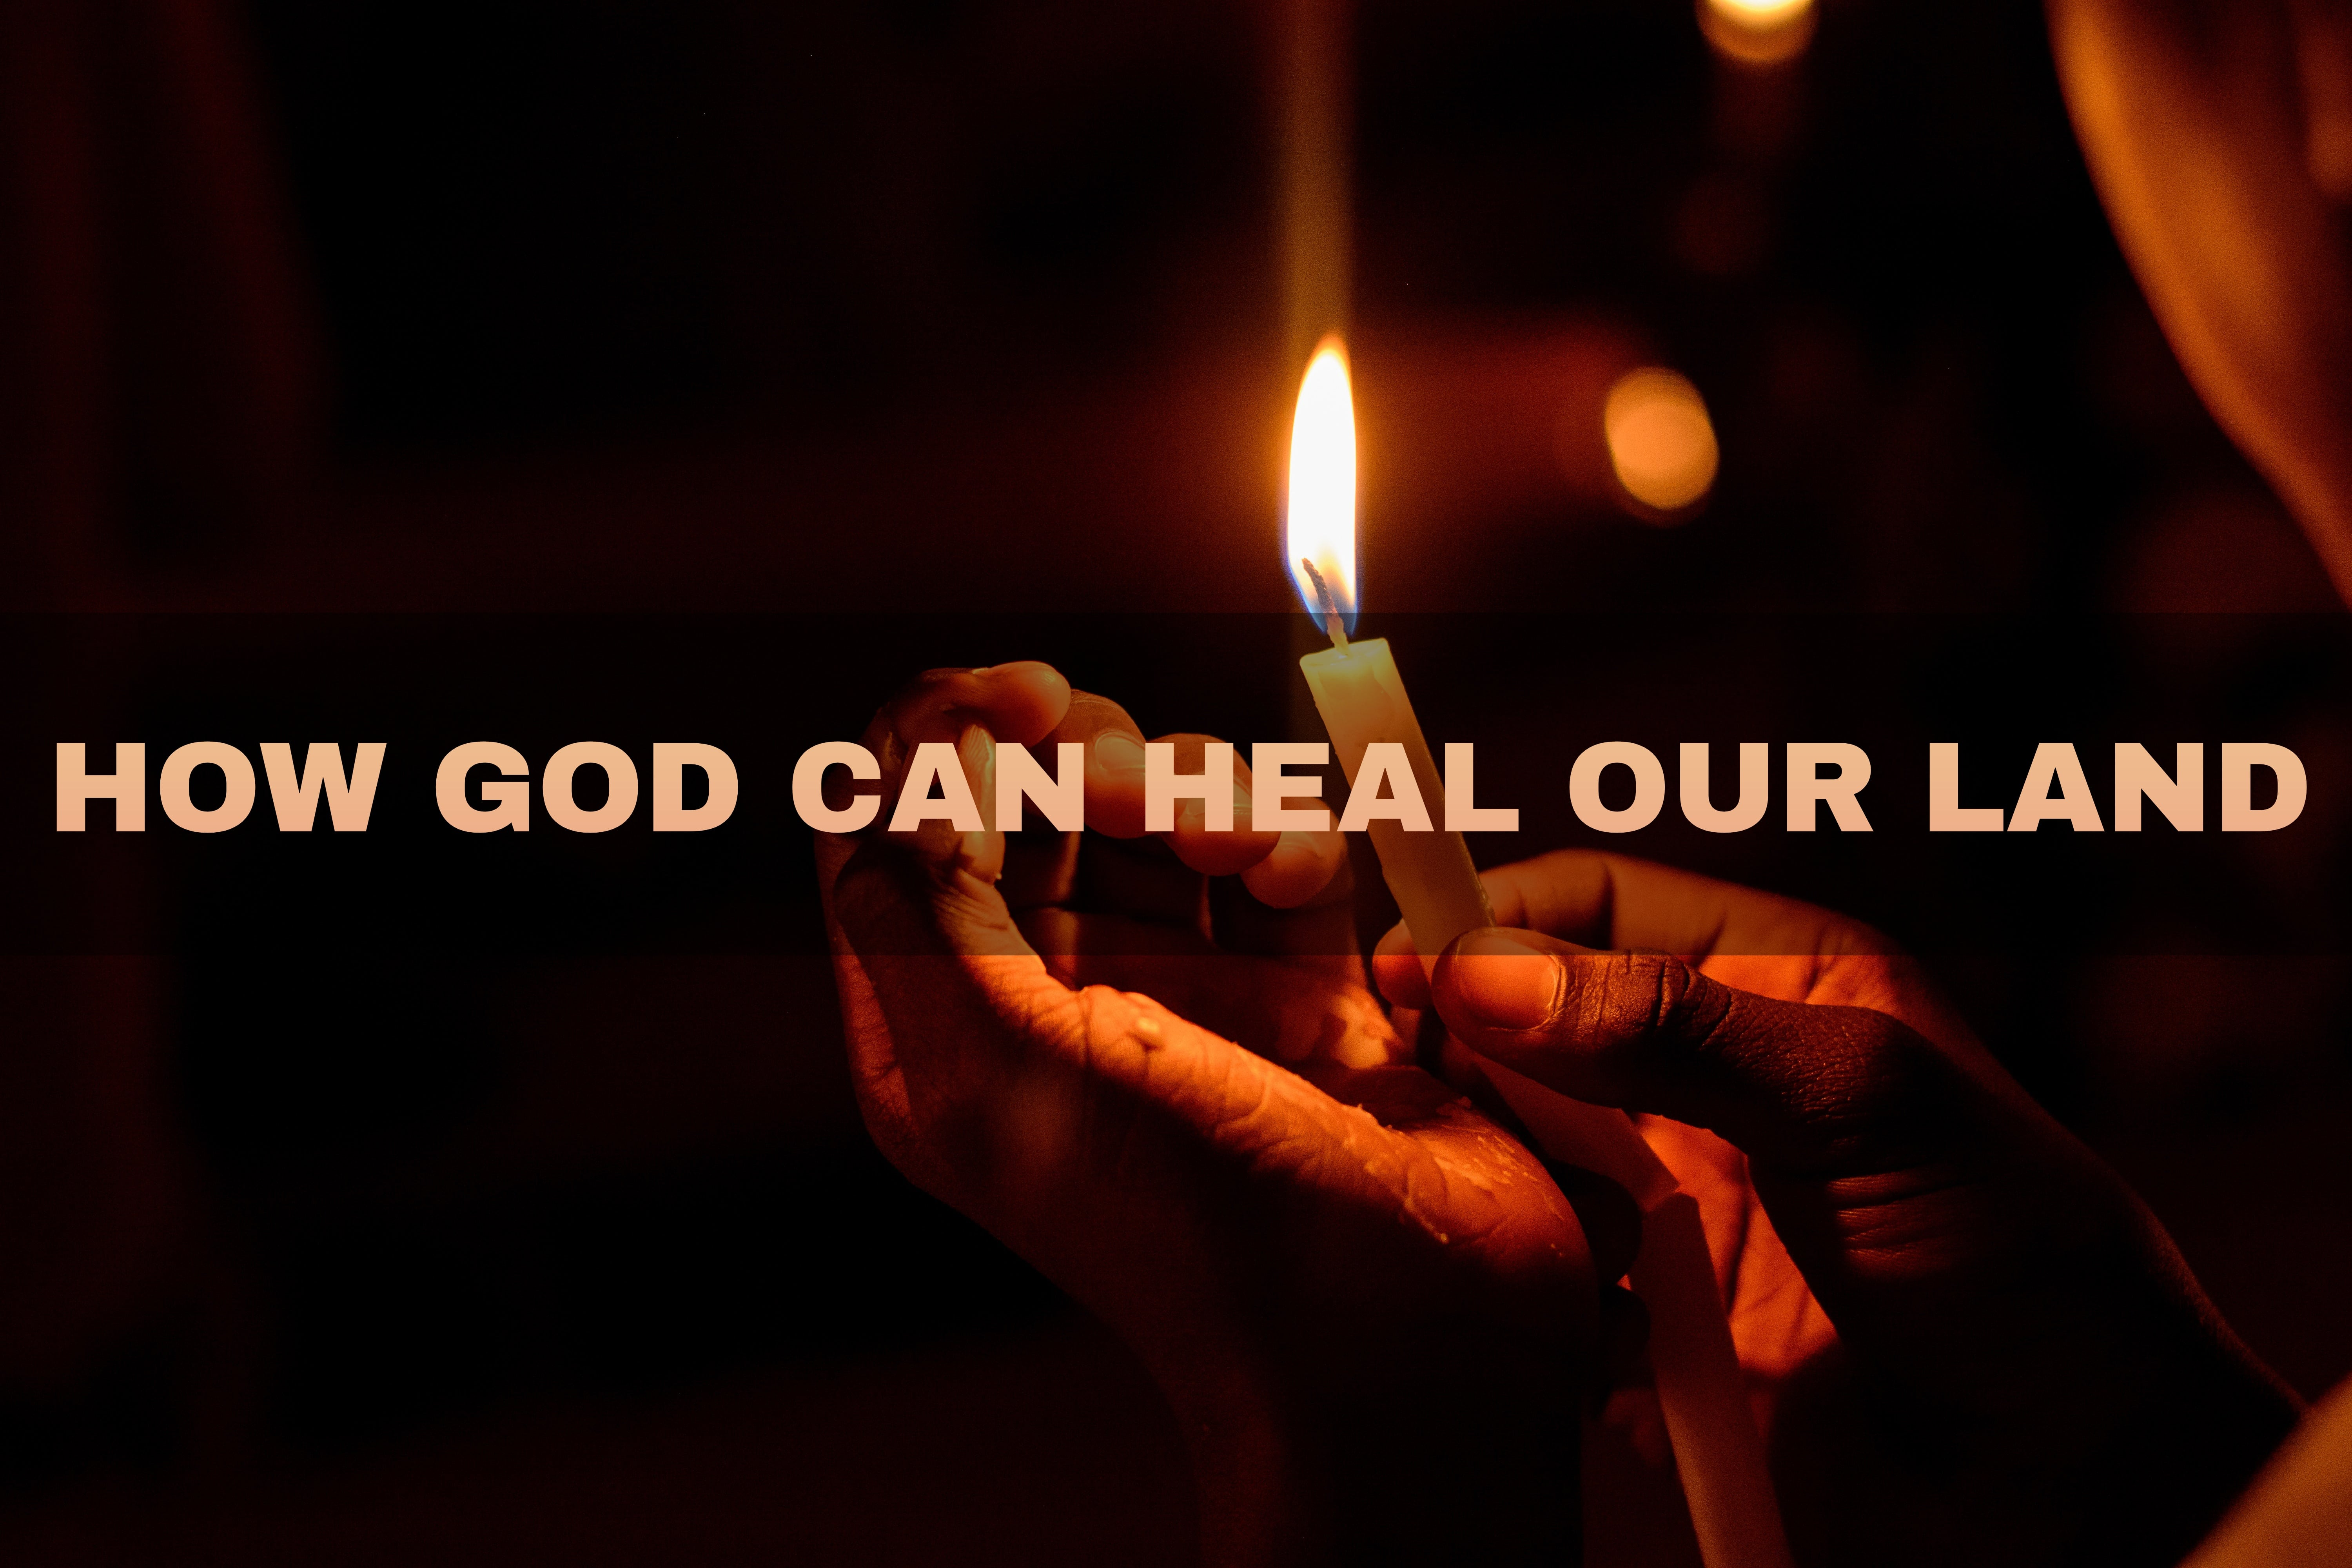 How God Can Heal Our Land